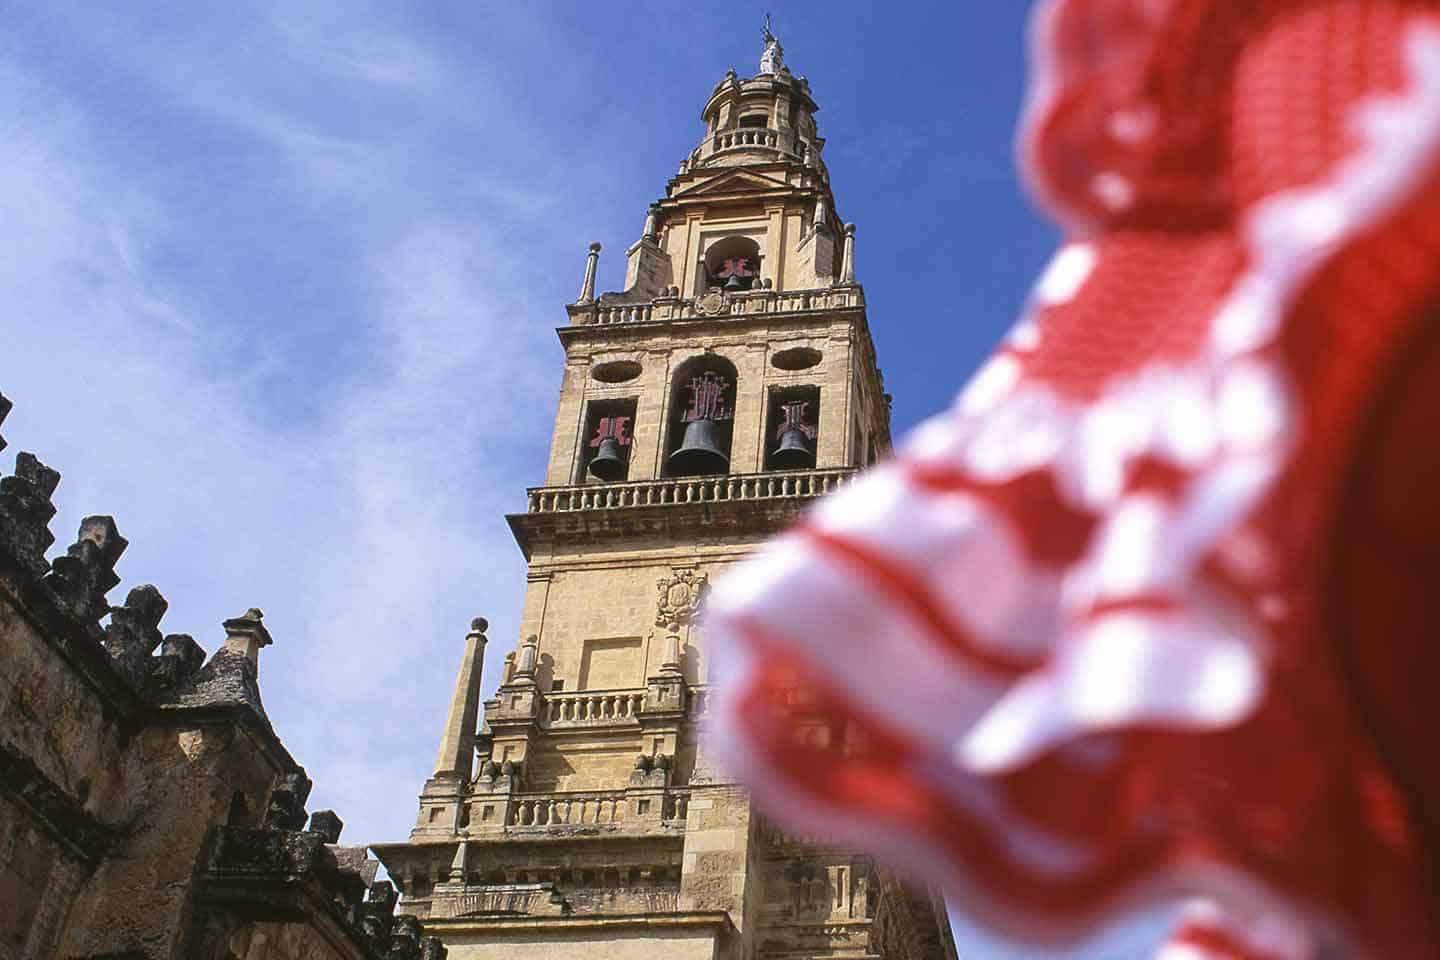 Image of Cordoba flamenco dress with the Cordoba mosque-cathedral belltower in the background